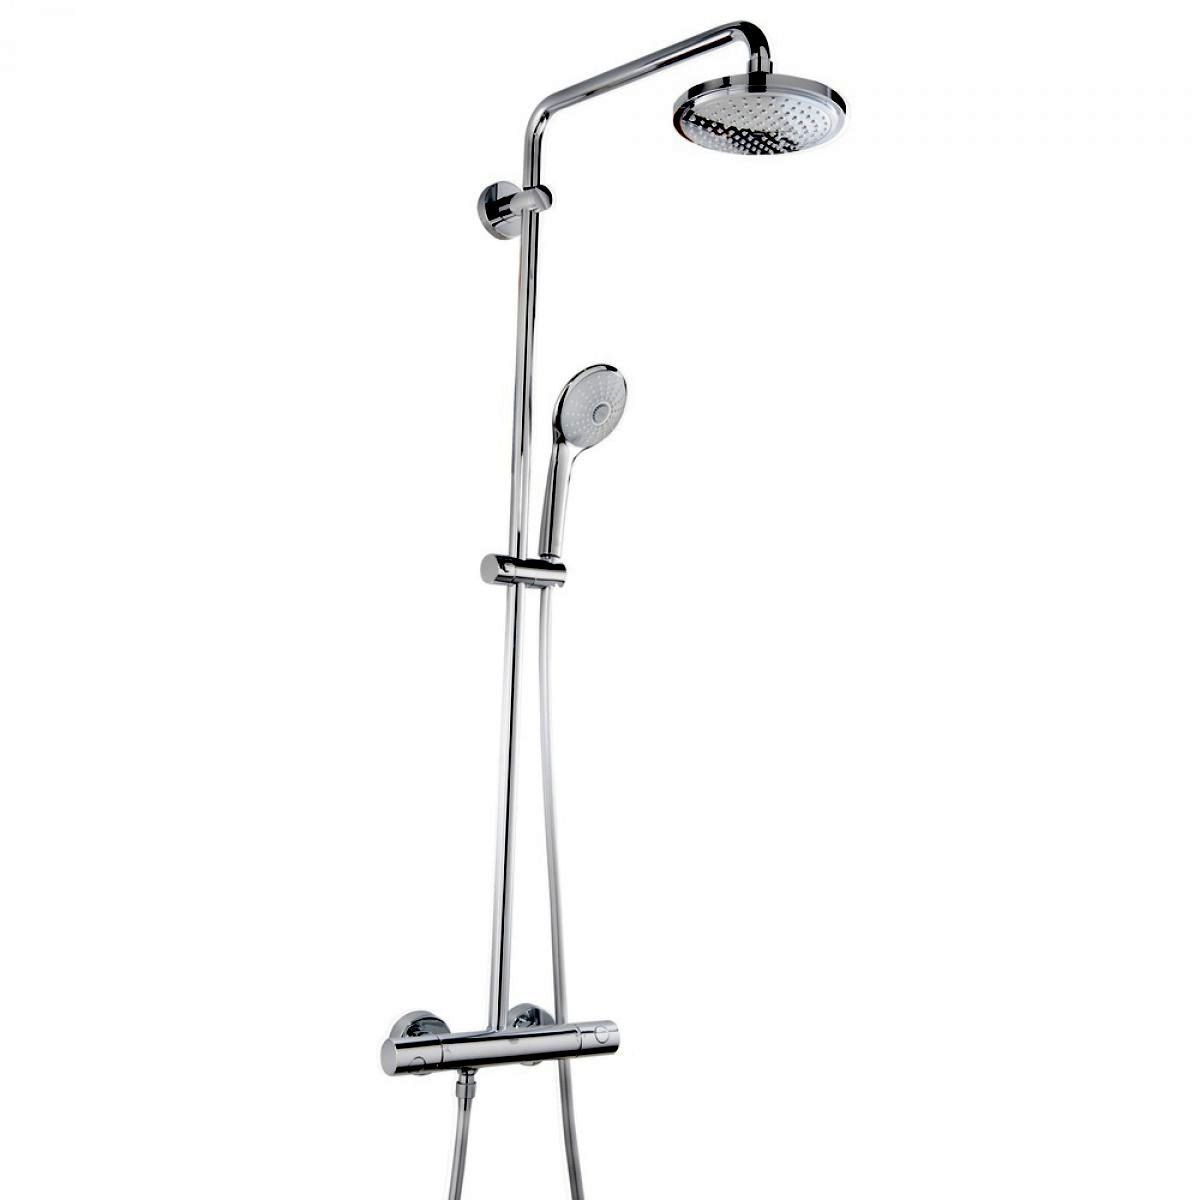 ... Grohe Euphoria 180 Thermostatic Shower System